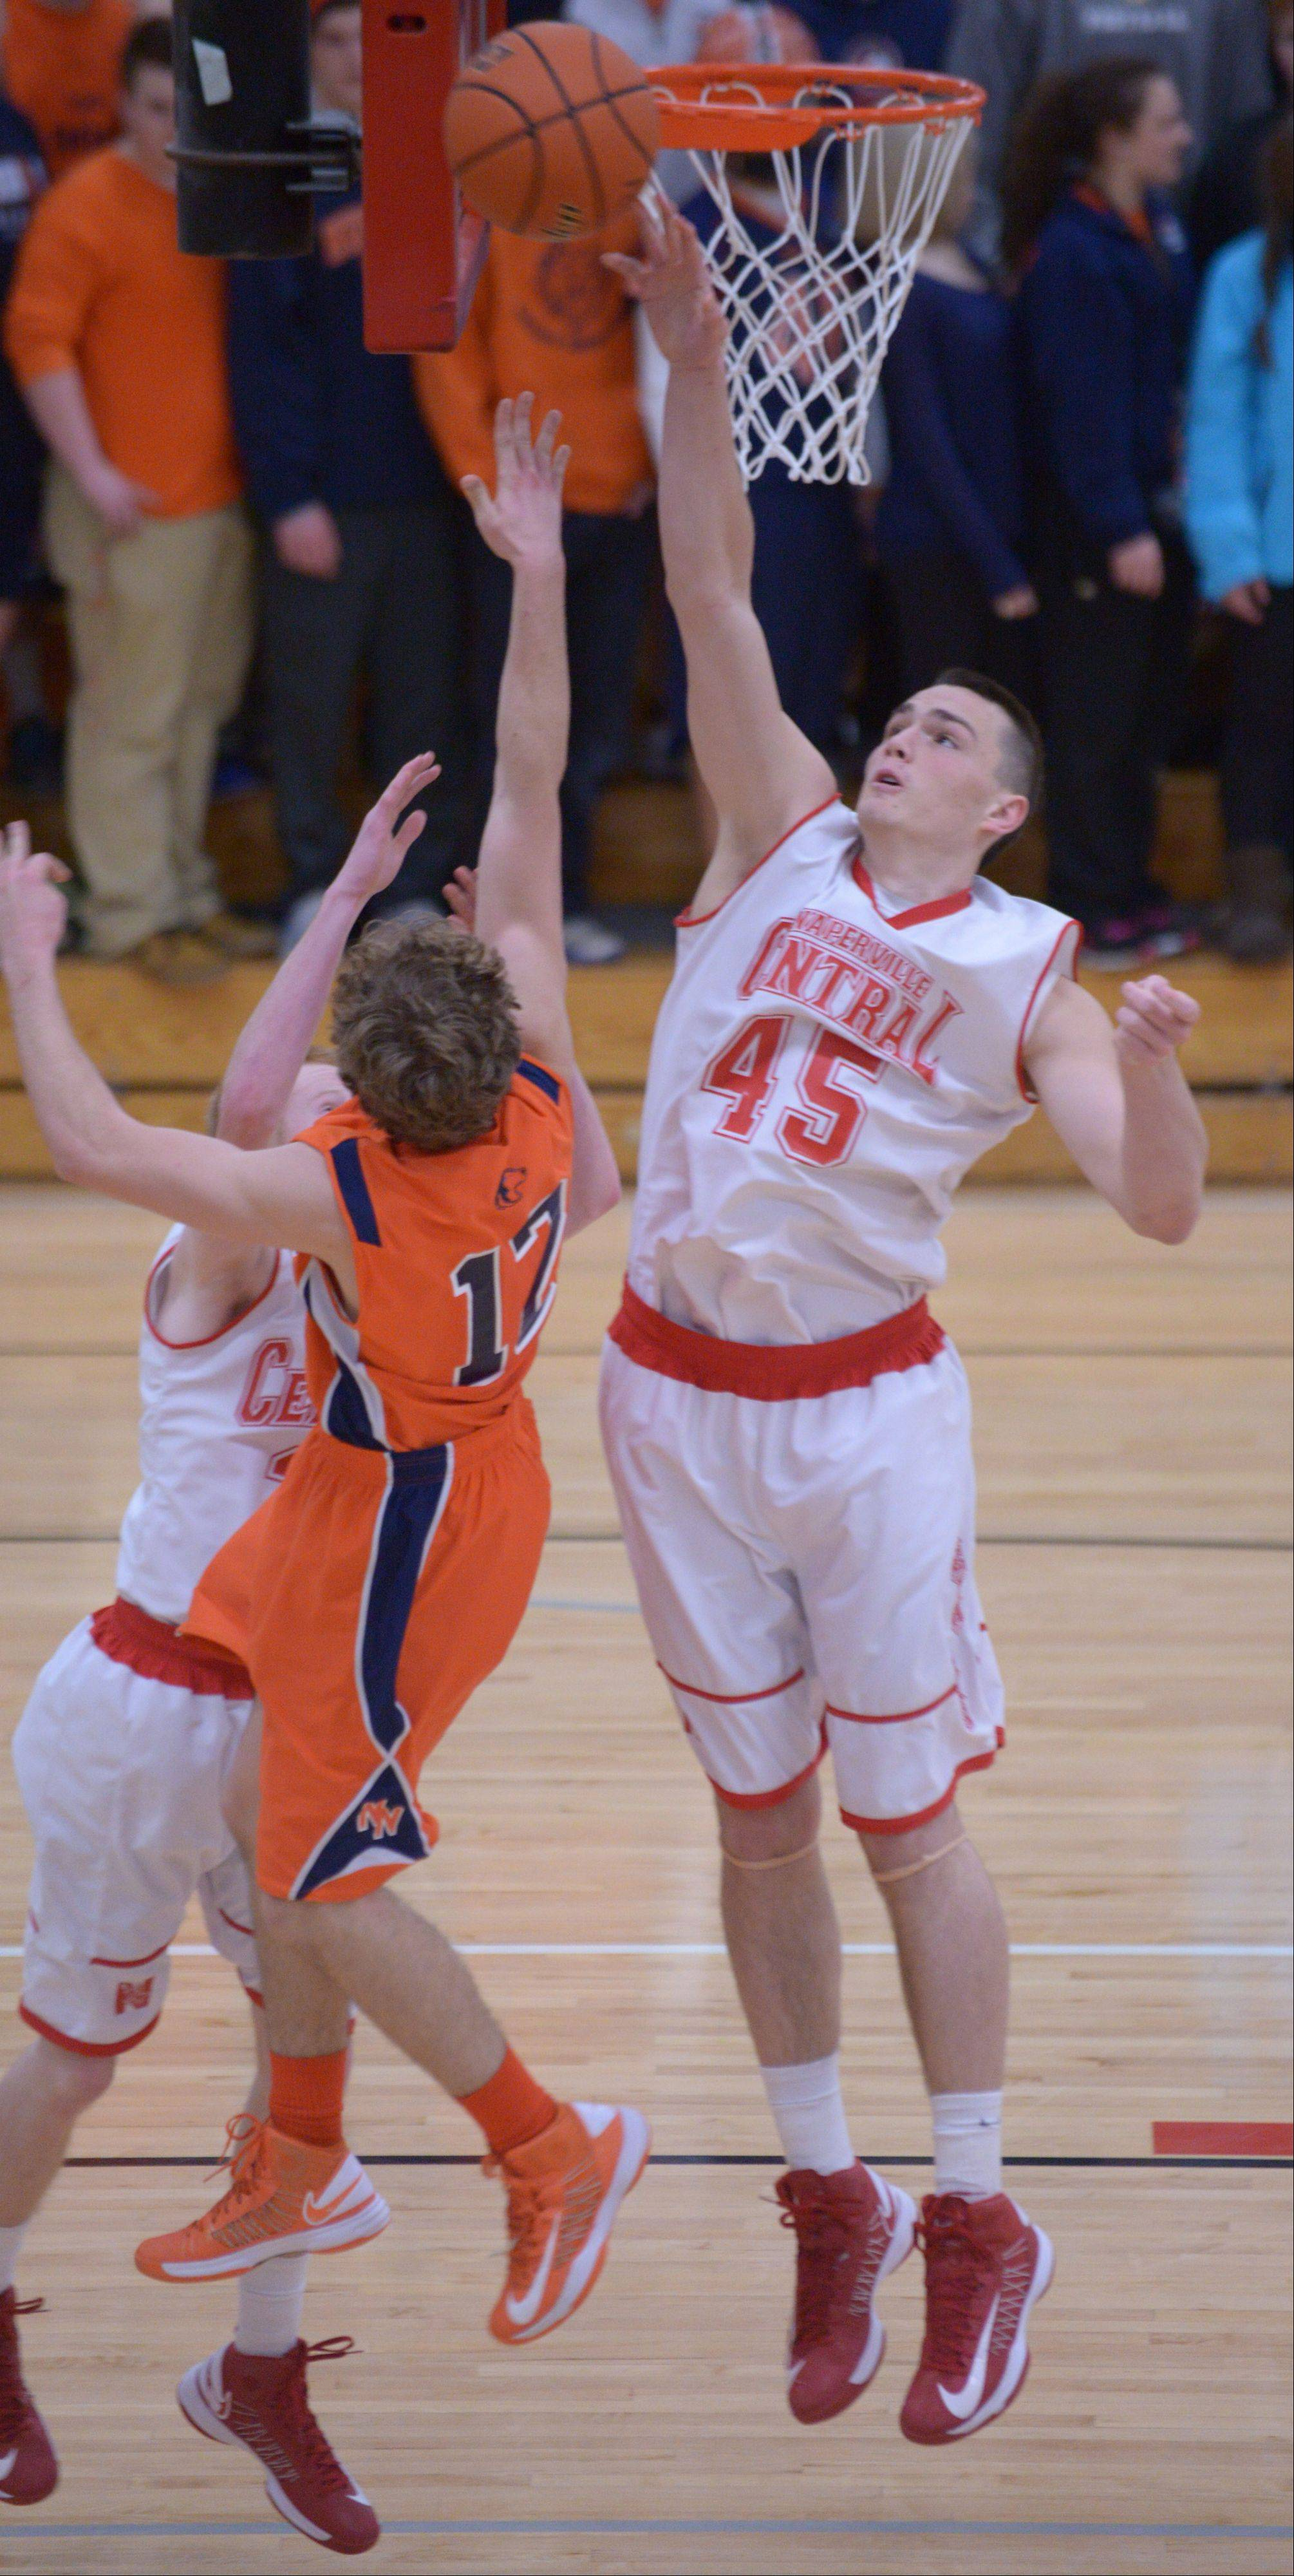 Nick Czarnowski of Naperville Central goes up for a block .